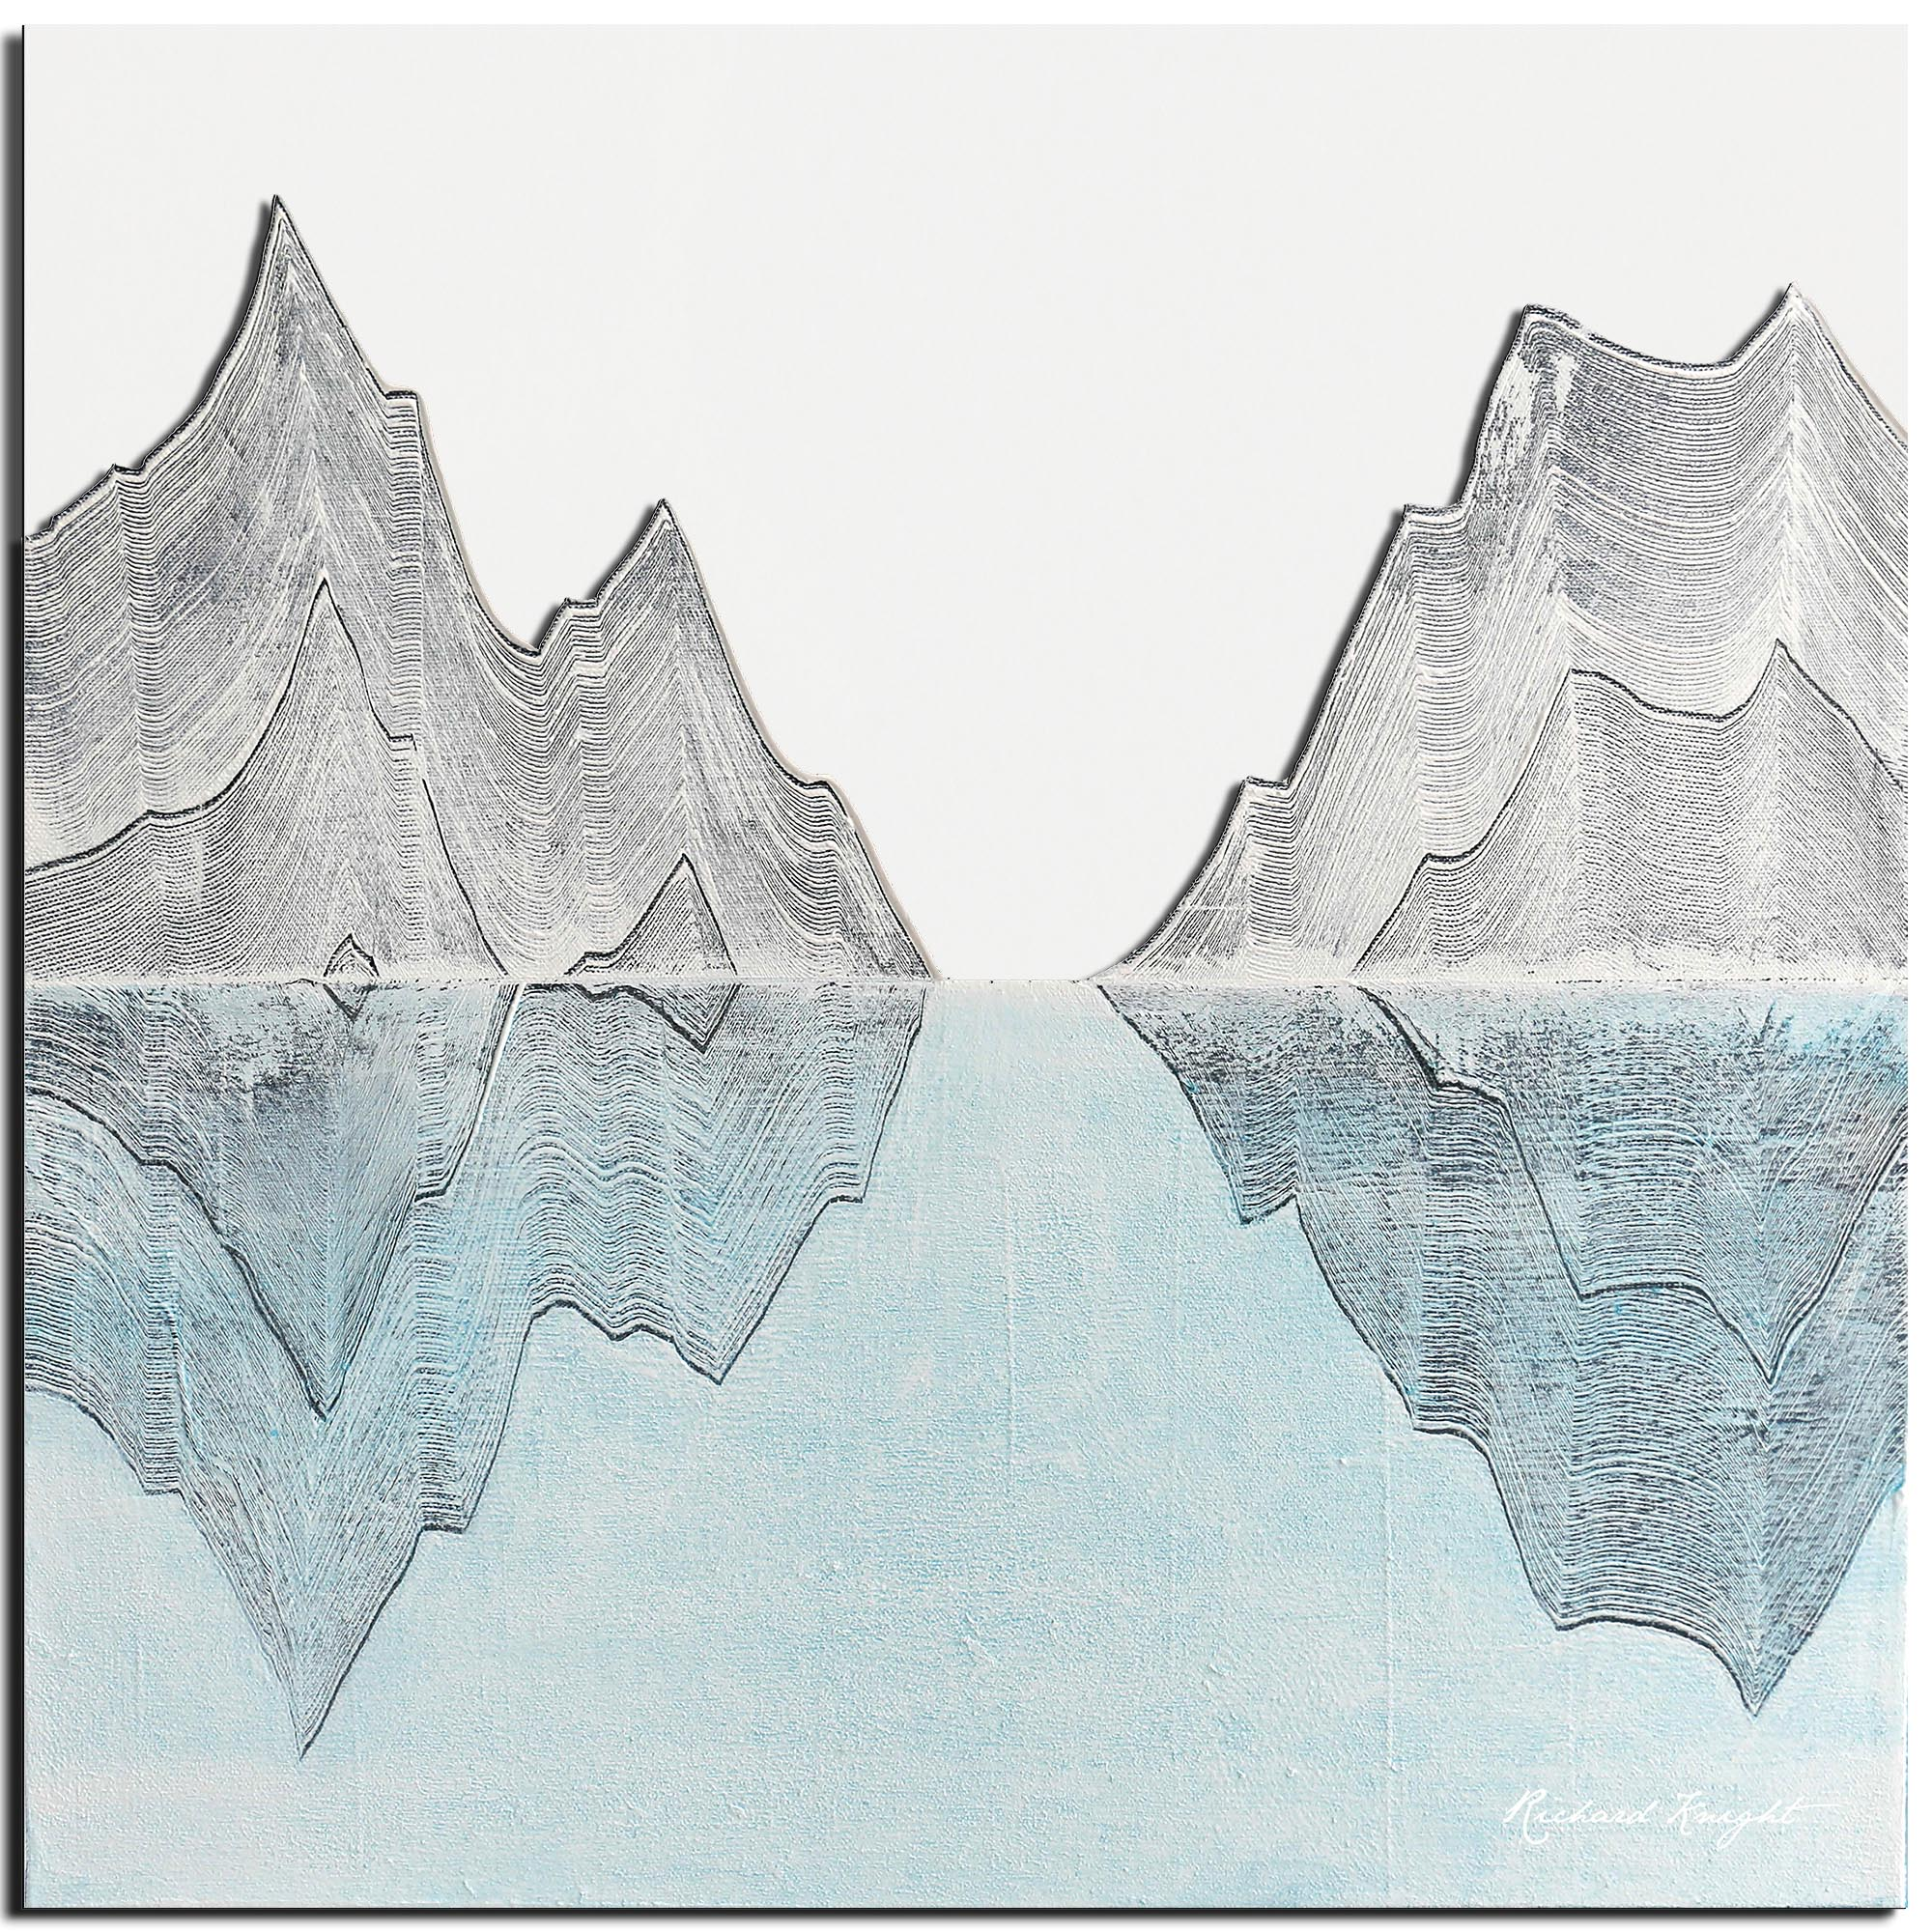 Richard Knight 'Reflection Peaks' 22in x 22in Abstract Landscape Art on Polymetal